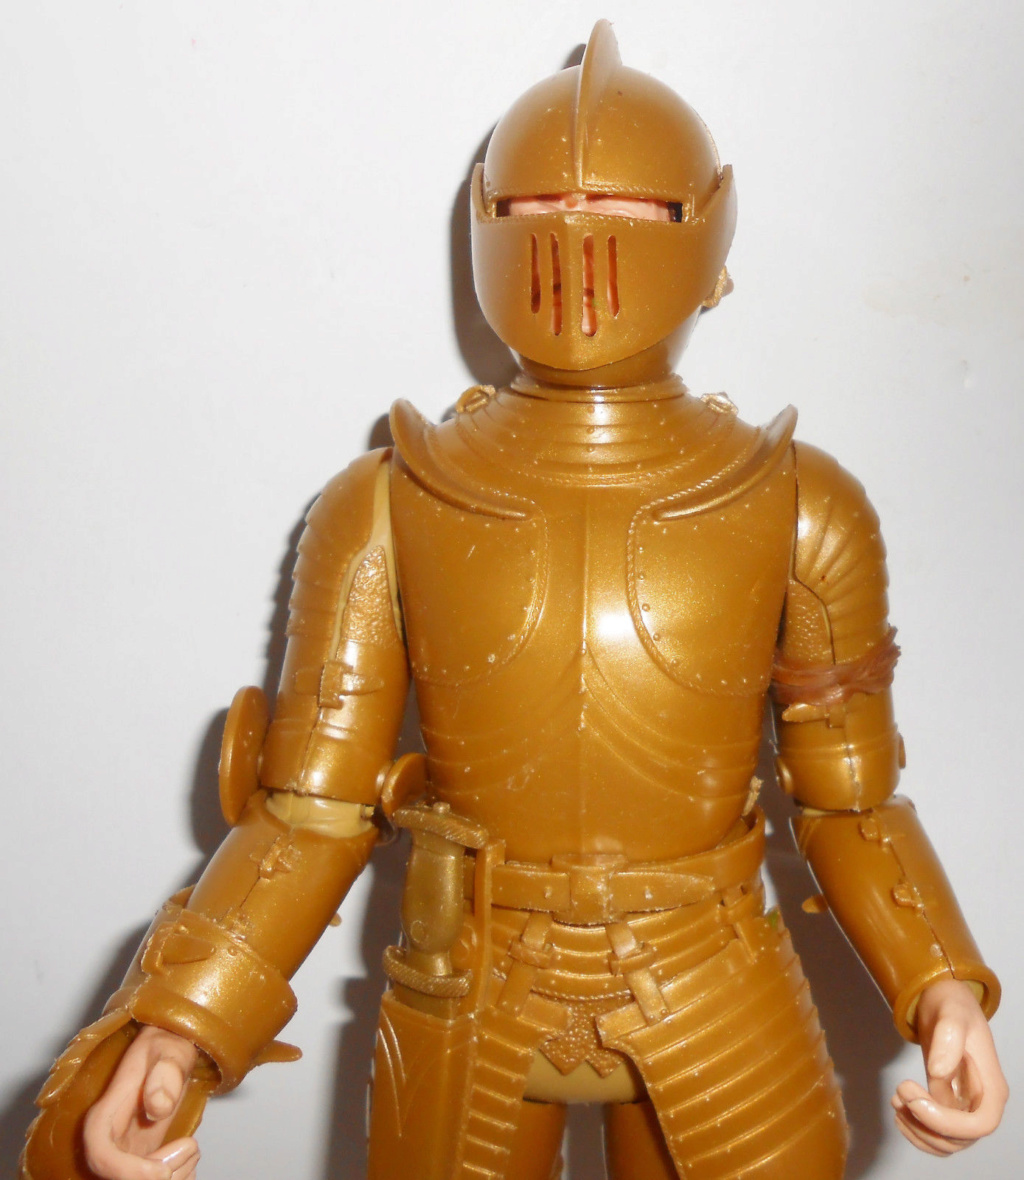 COOMODEL 1/6 Empire Series - (New Lightweight Metal) Milanese Knight Marx-g10